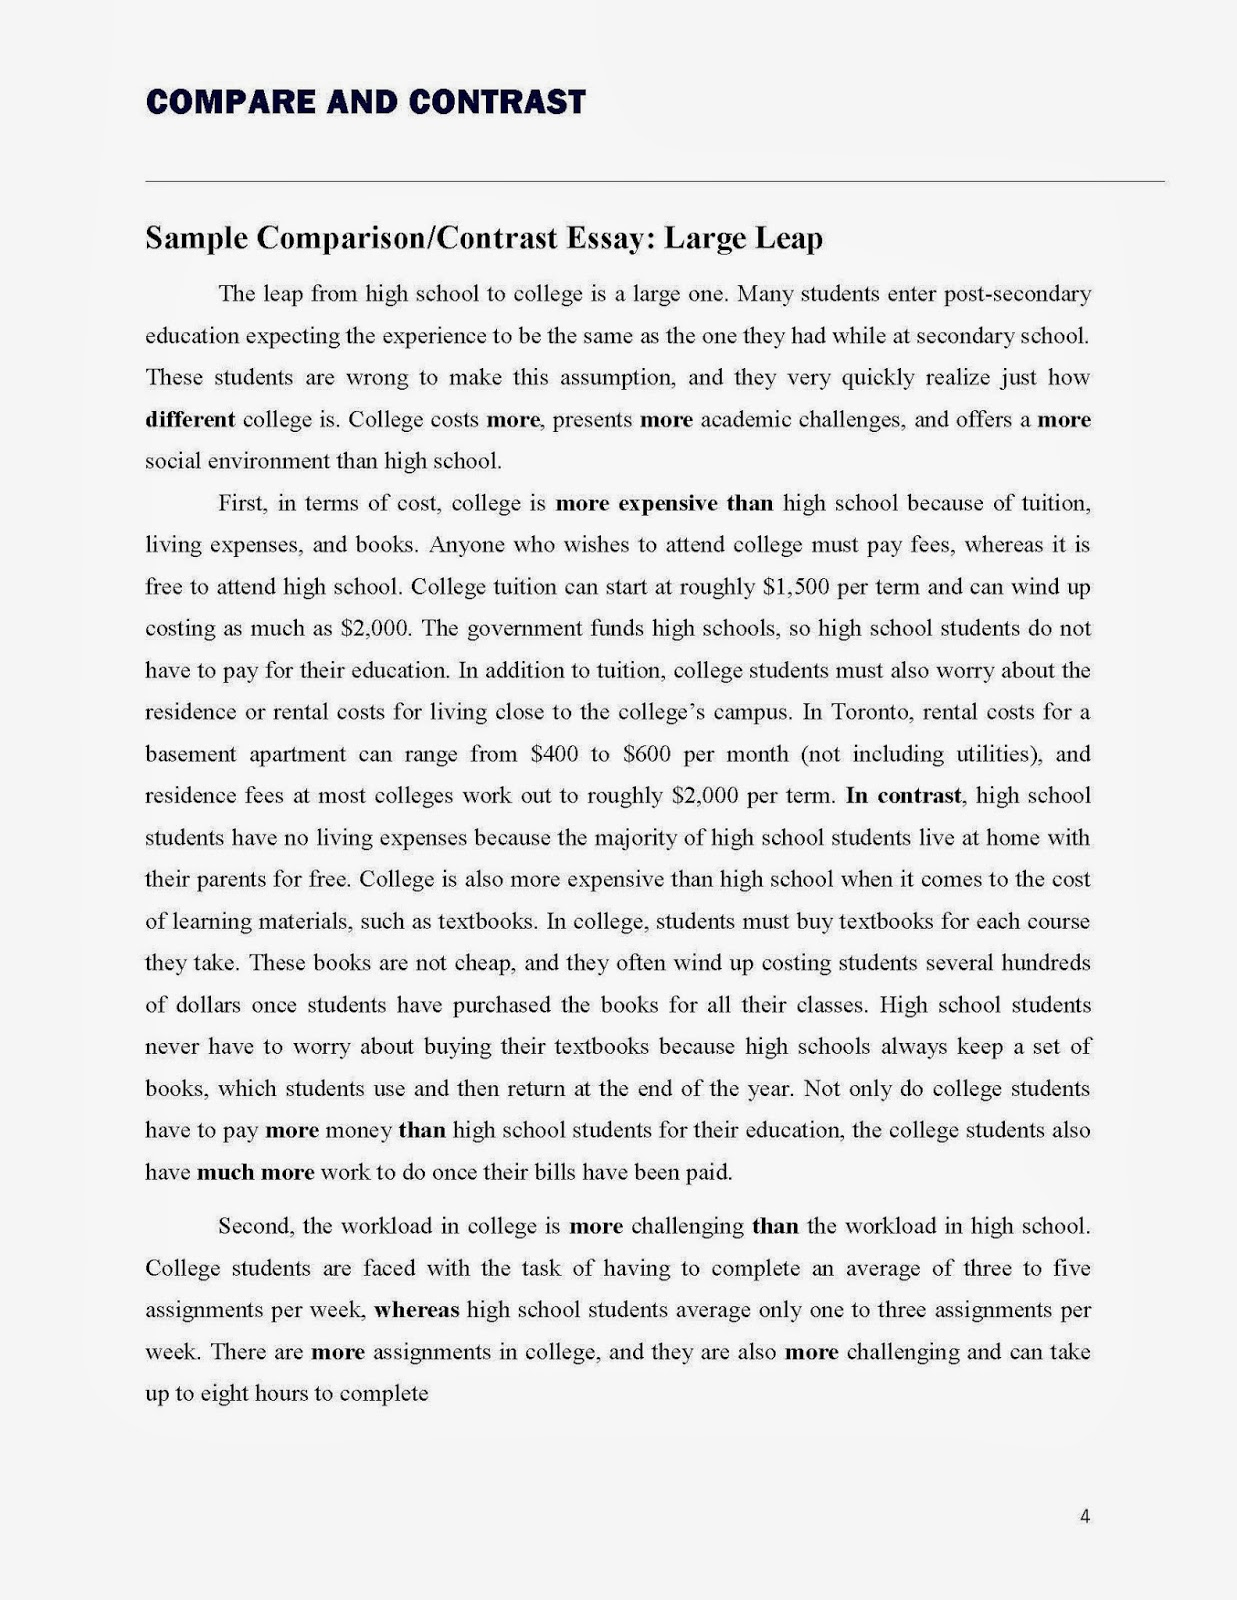 011 Good Compare And Contrast Essay Compare20and20contrast20essay Page 4 Unbelievable Title Generator Examples High School Titles Full